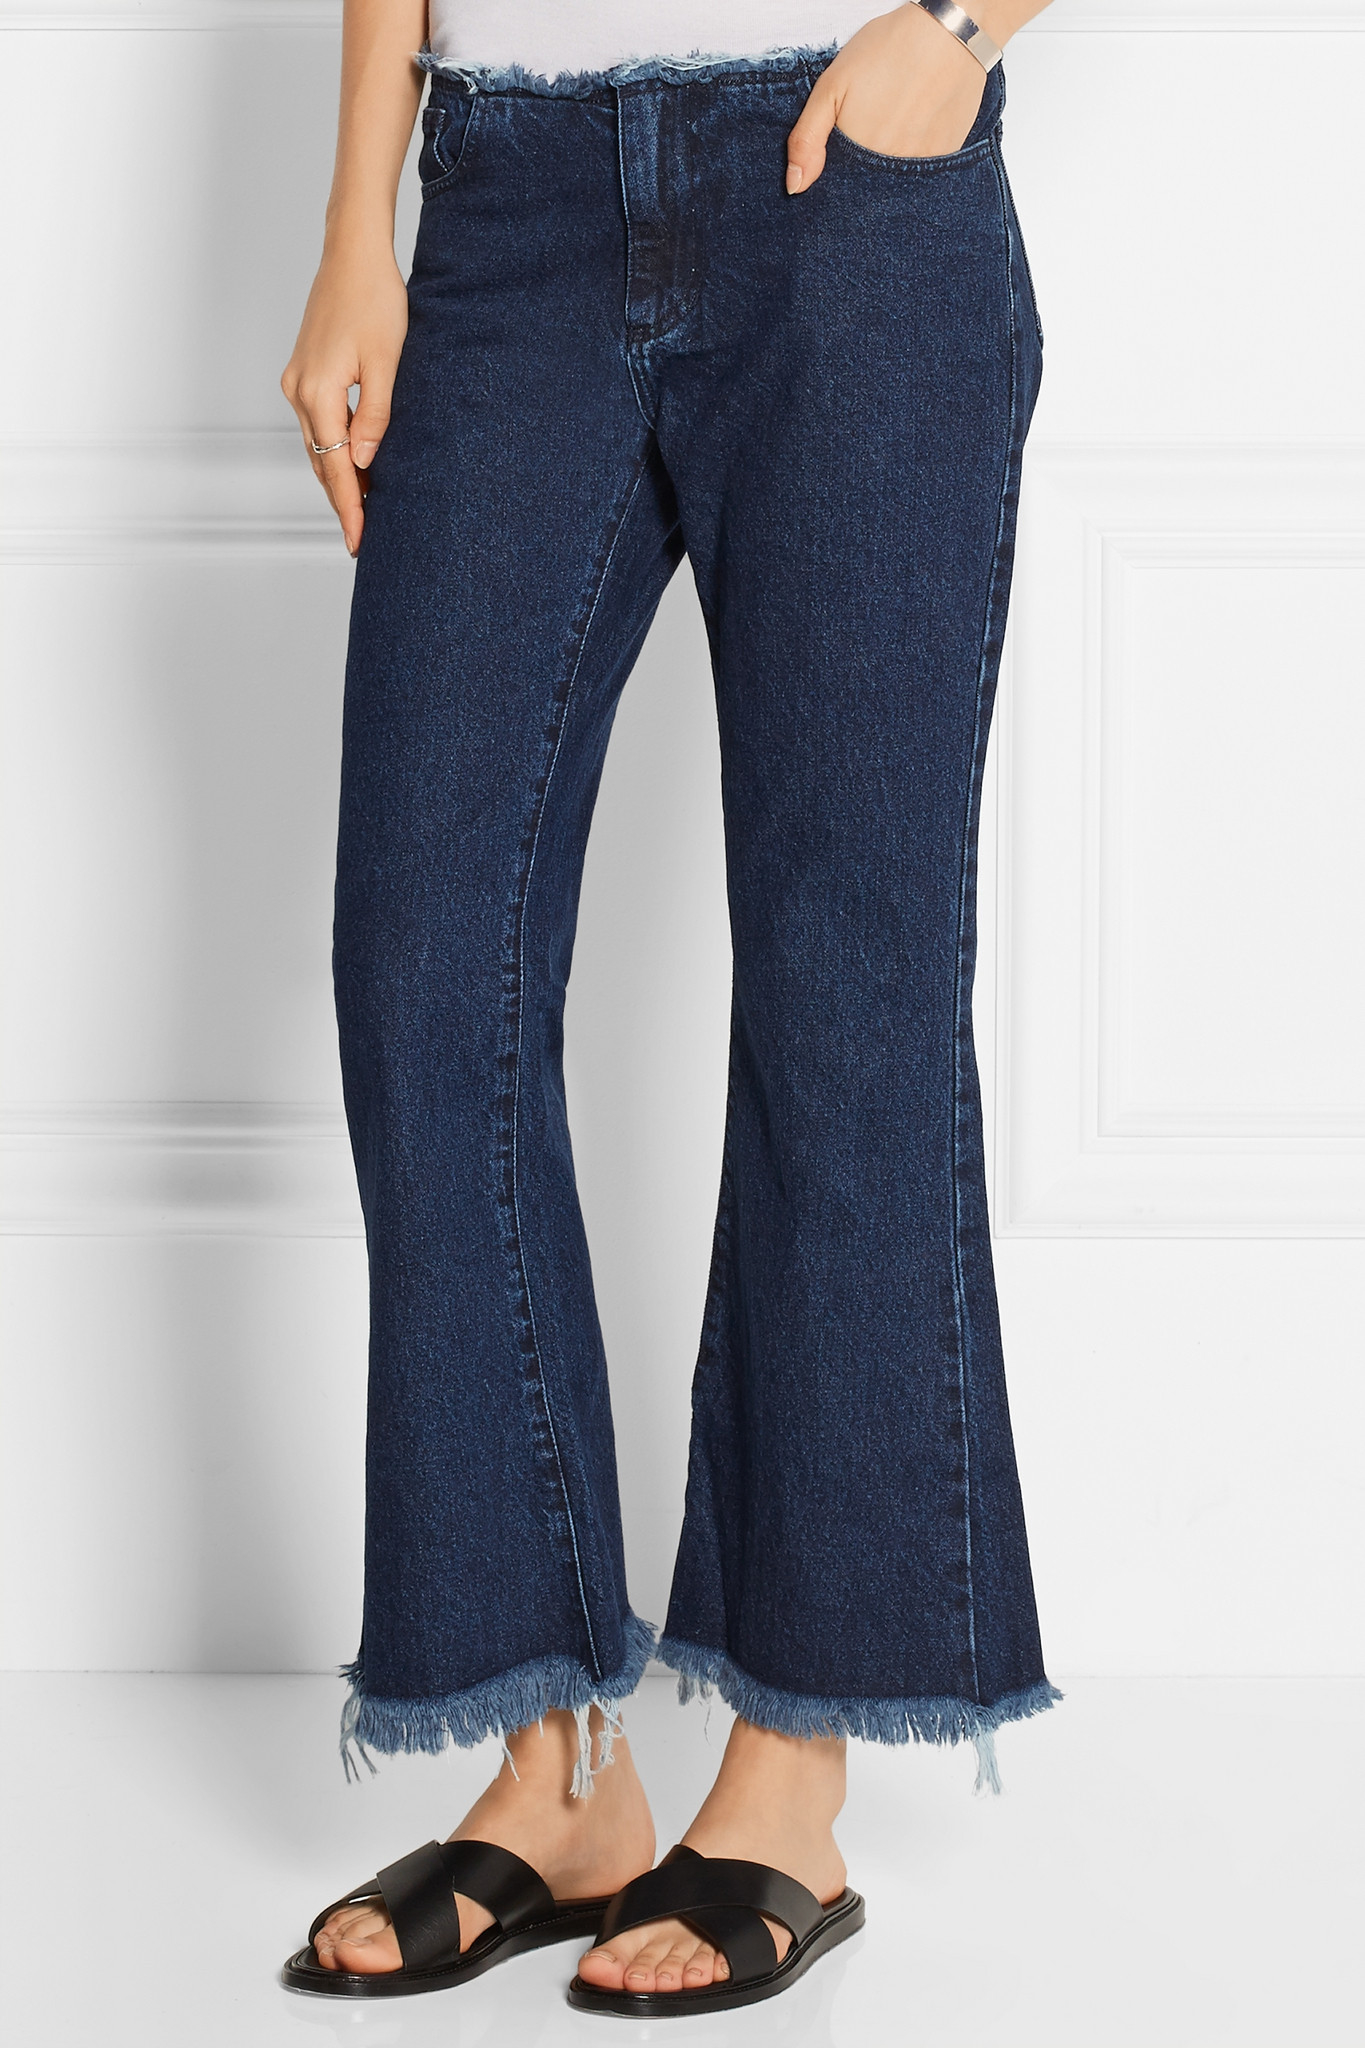 Stretchy Jeans Women